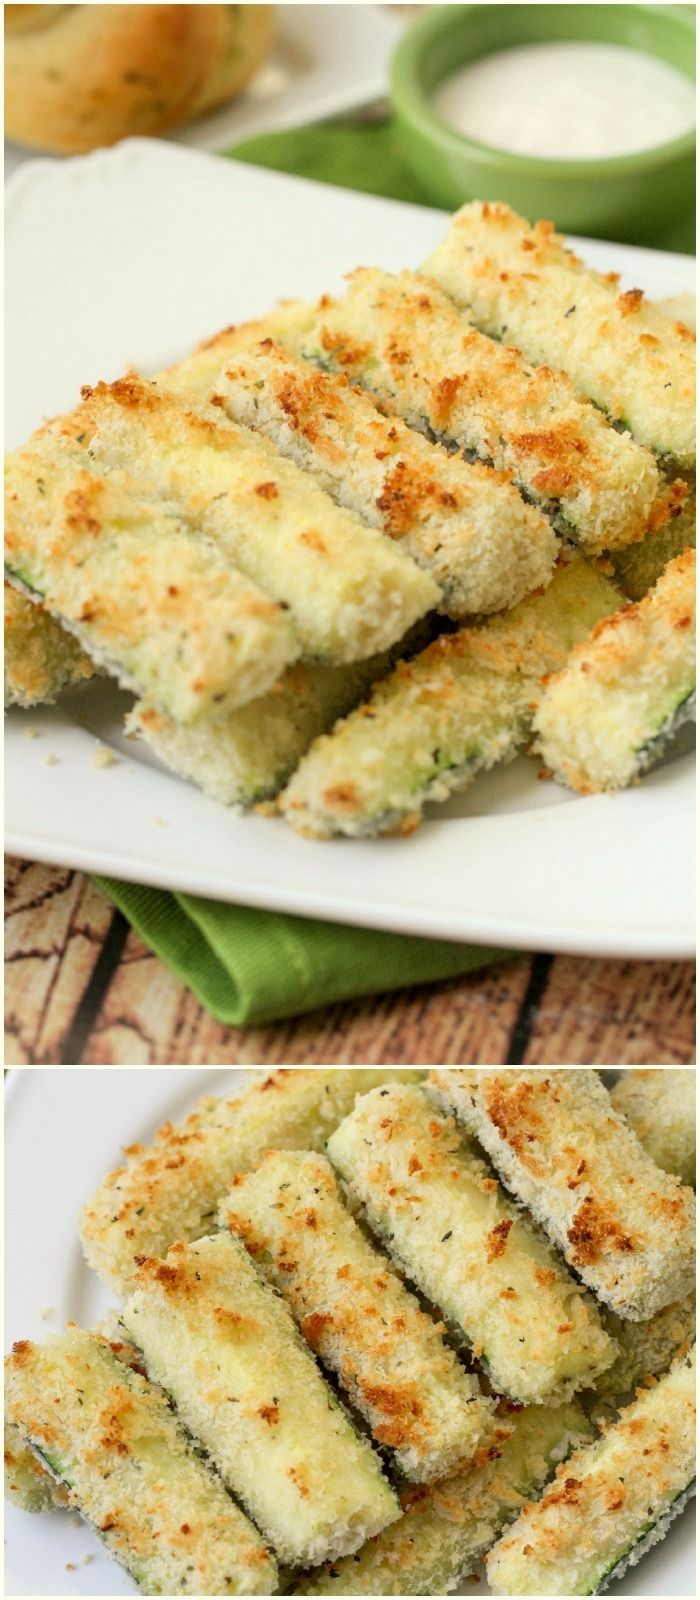 Healthy and delicious Baked Crusted Zucchini Sticks recipe - one of our favorite side dishes. { lilluna.com } Packed with flavor - panko, parmesan cheese, oregano, and basil.